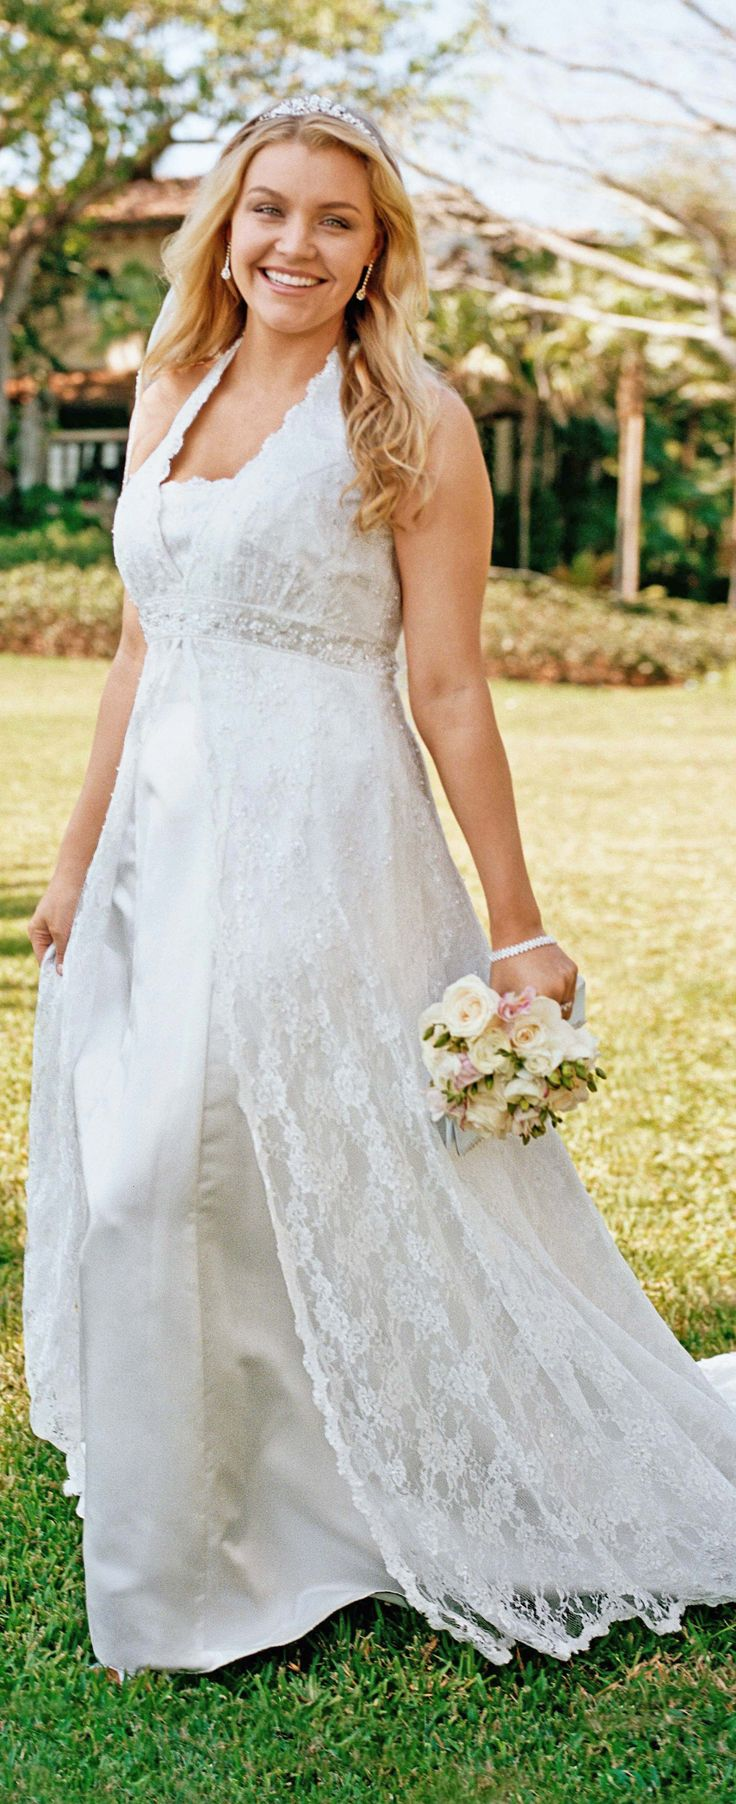 Read about plus size wedding dresses for apple shaped women with big tummies or no waistline. - dress David's Bridal - read article: http://www.boomerinas.com/2014/10/08/wedding-dresses-for-your-body-type-apple-shapes-plus-size-tummies/